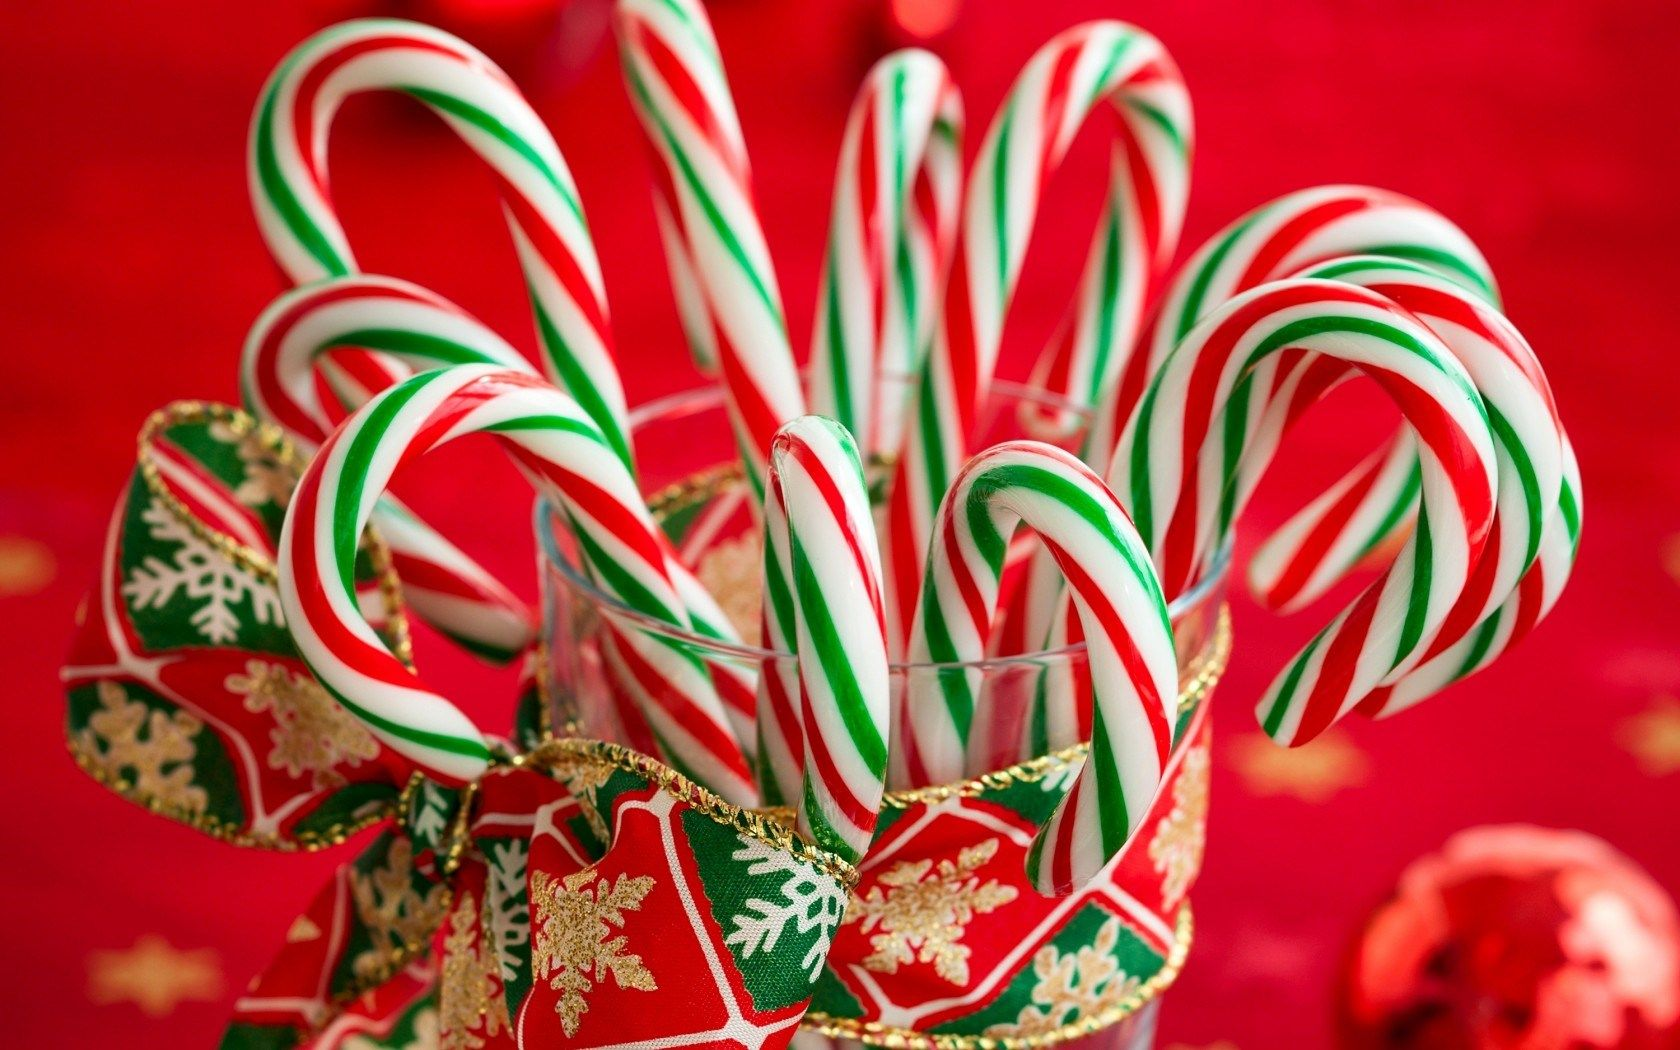 candy cane holiday wallpaper 72304